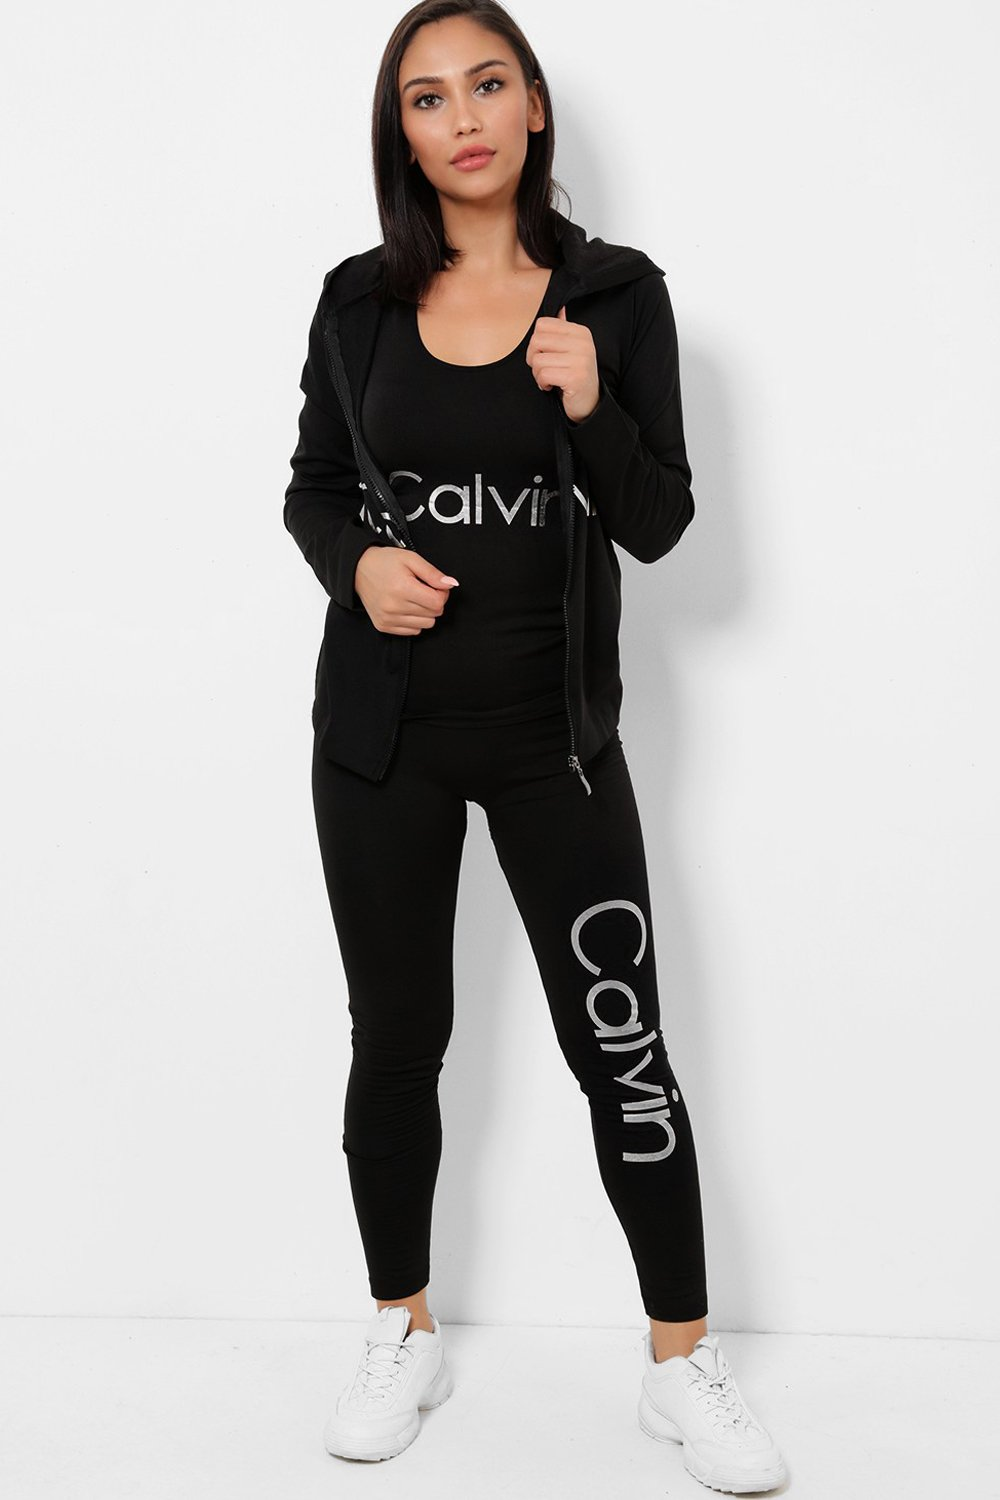 Silver Foil Print Fleece-back Stretchy 3 Piece Tracksuit